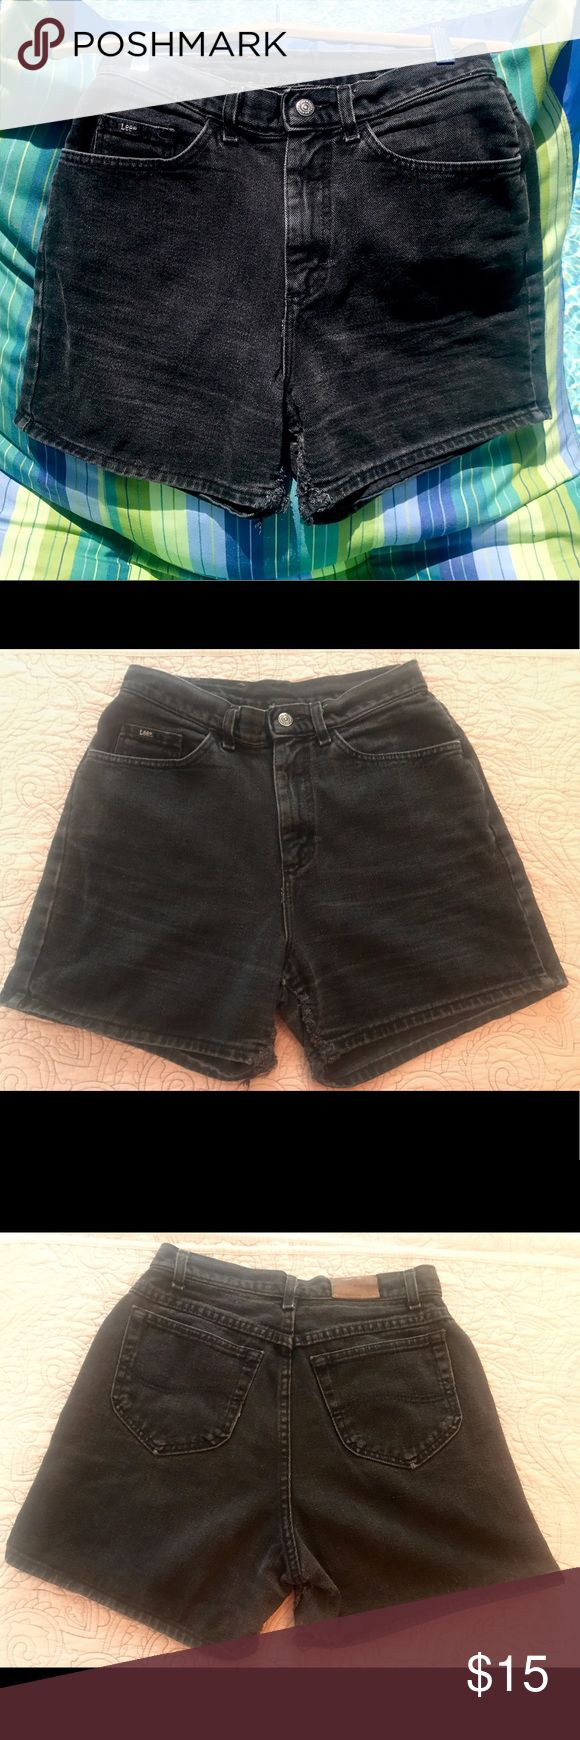 "Vintage Lee Jean Black Denim Shorts Festival Wear Vintage, black denim Lee Jean Shorts. High waist. Authentic tears. Tears only along right & left inside edges (see photos). Size 10. Made in USA. Ready for summer festival wear!  Measurements: Waist flat - 14.5"" Inseam - 4"" Front rise - 12"" Back rise - 16.5"" Lee Jeans"